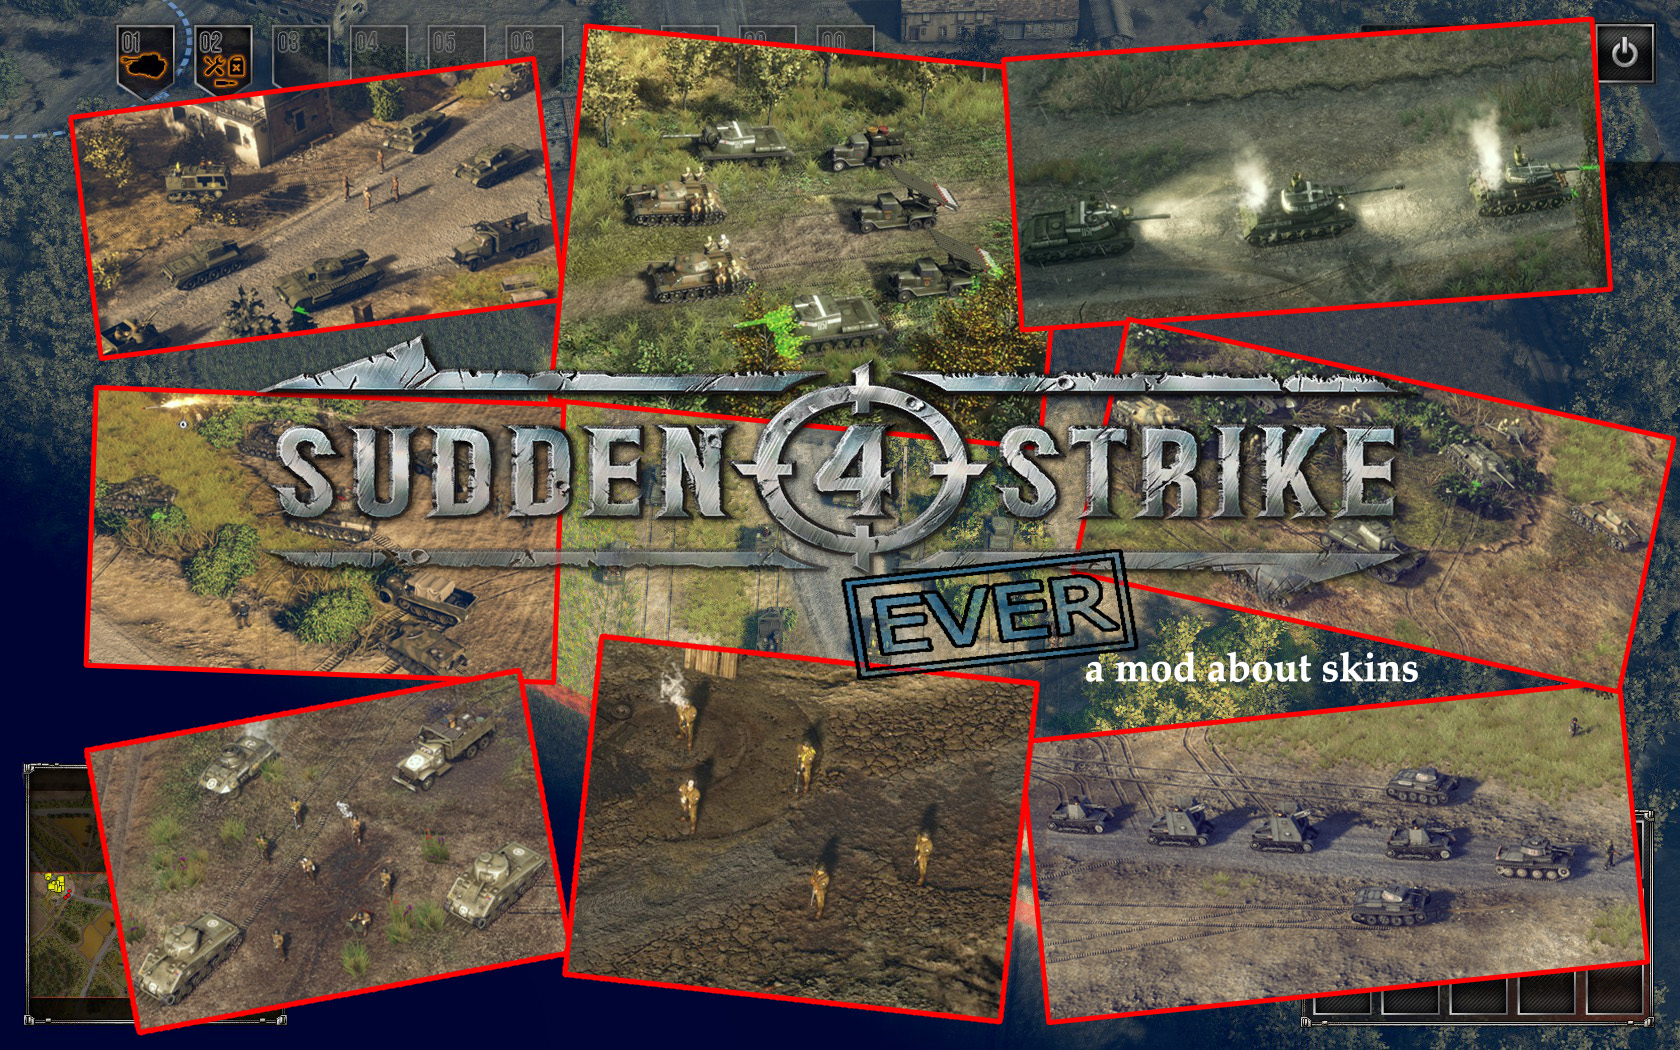 sudden strike 4ever skins mod 1 20181101 1645548188